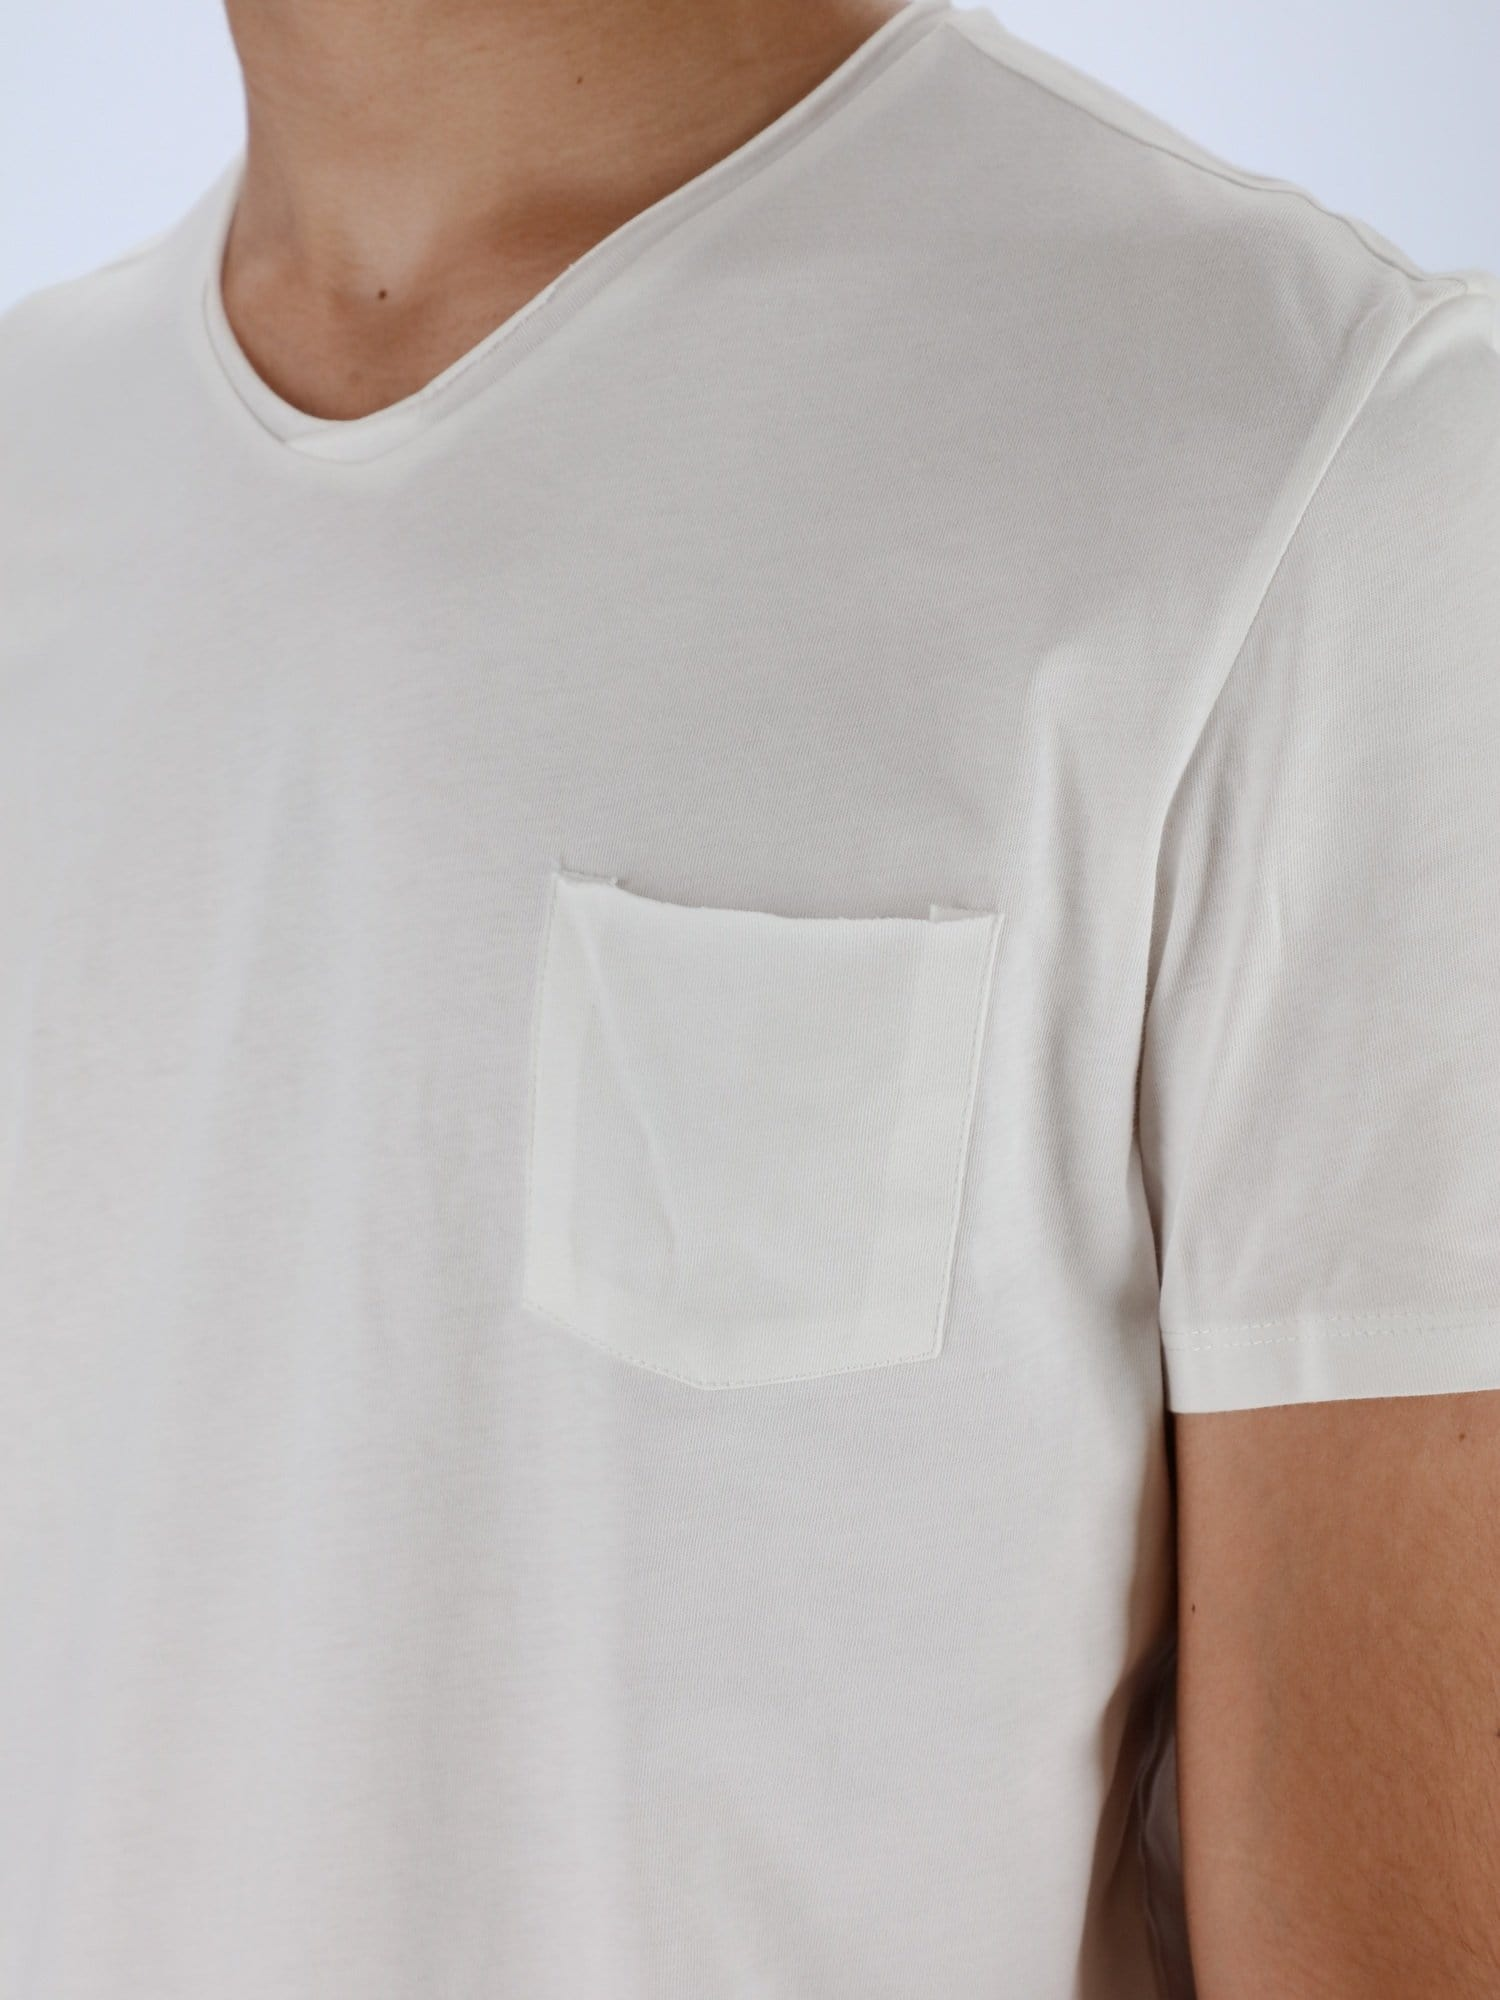 OR T-Shirts Off White / S Chest Pocket V-Neck Solid T-Shirt